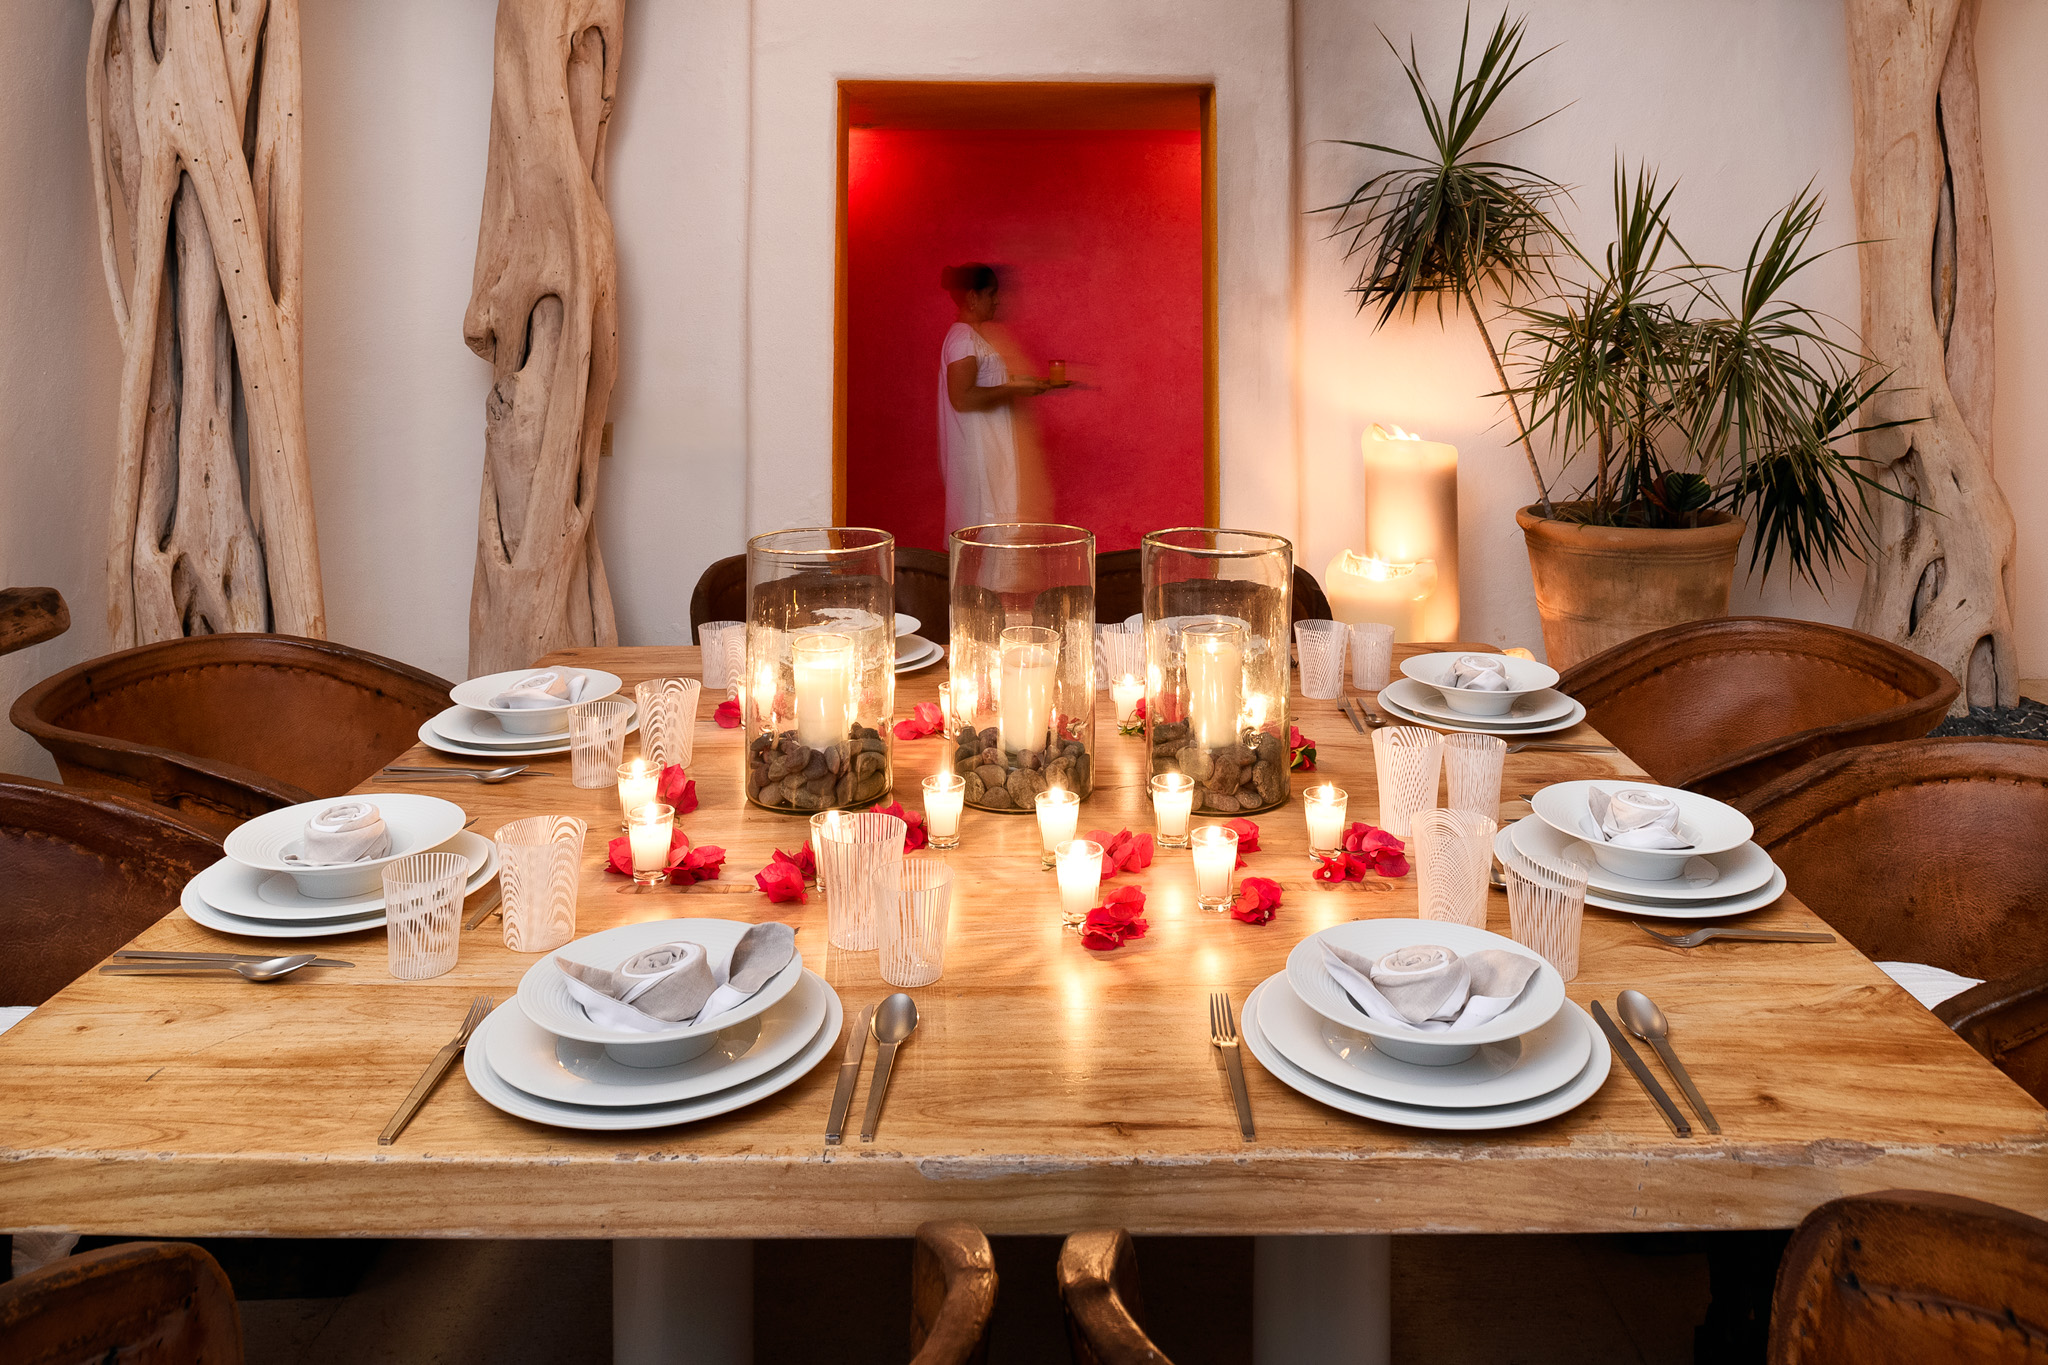 09-Dining Candles.jpg